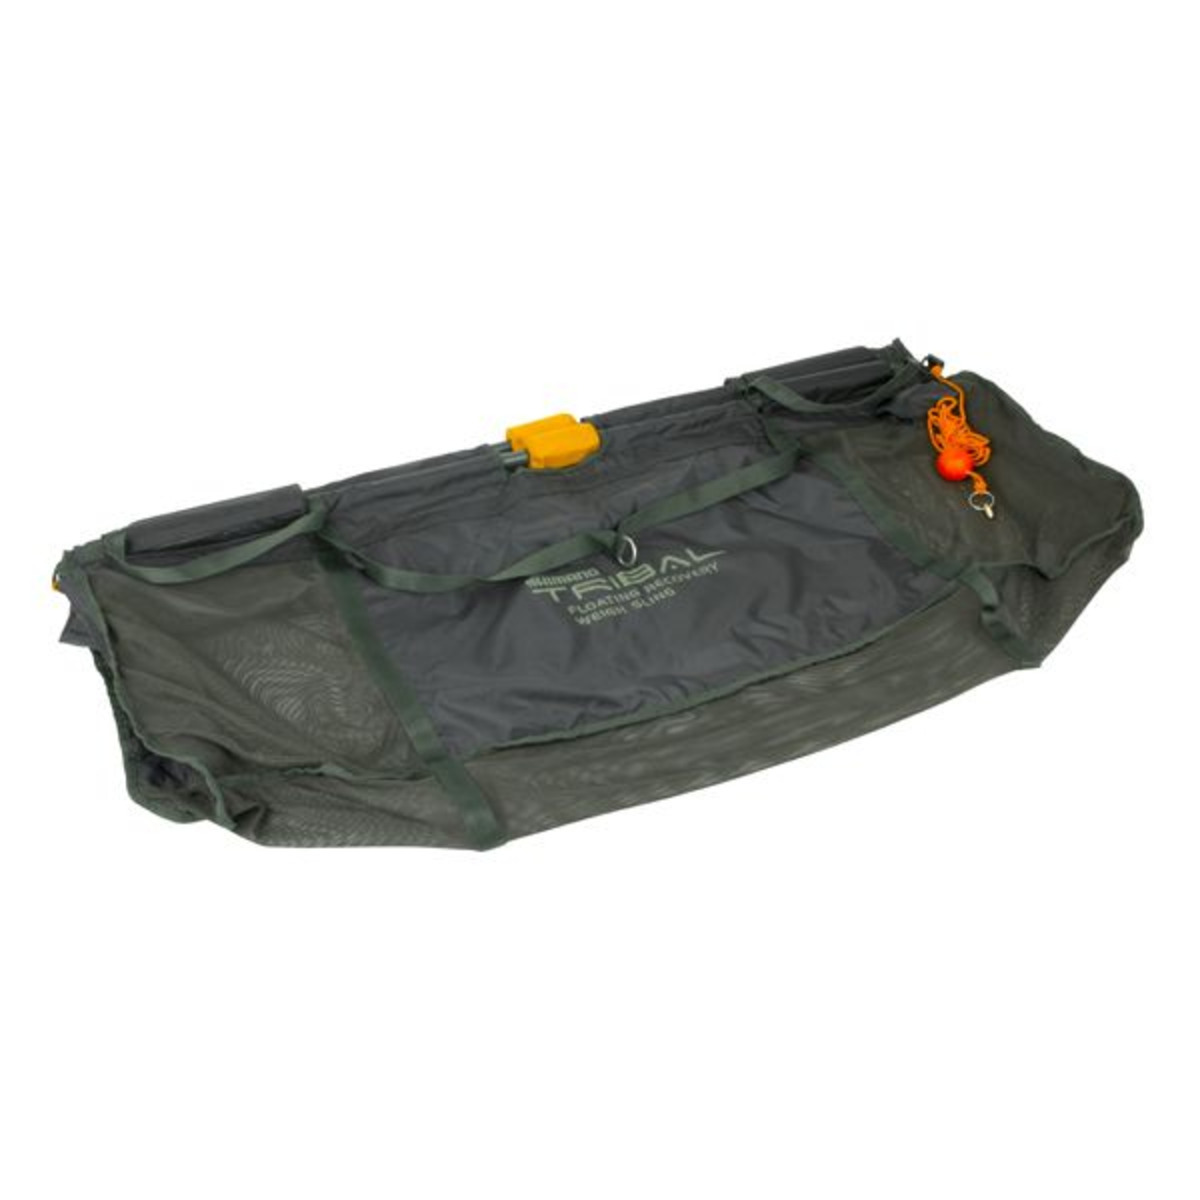 Shimano Tribal Recovery Weight Sling - 120x31x48 cm